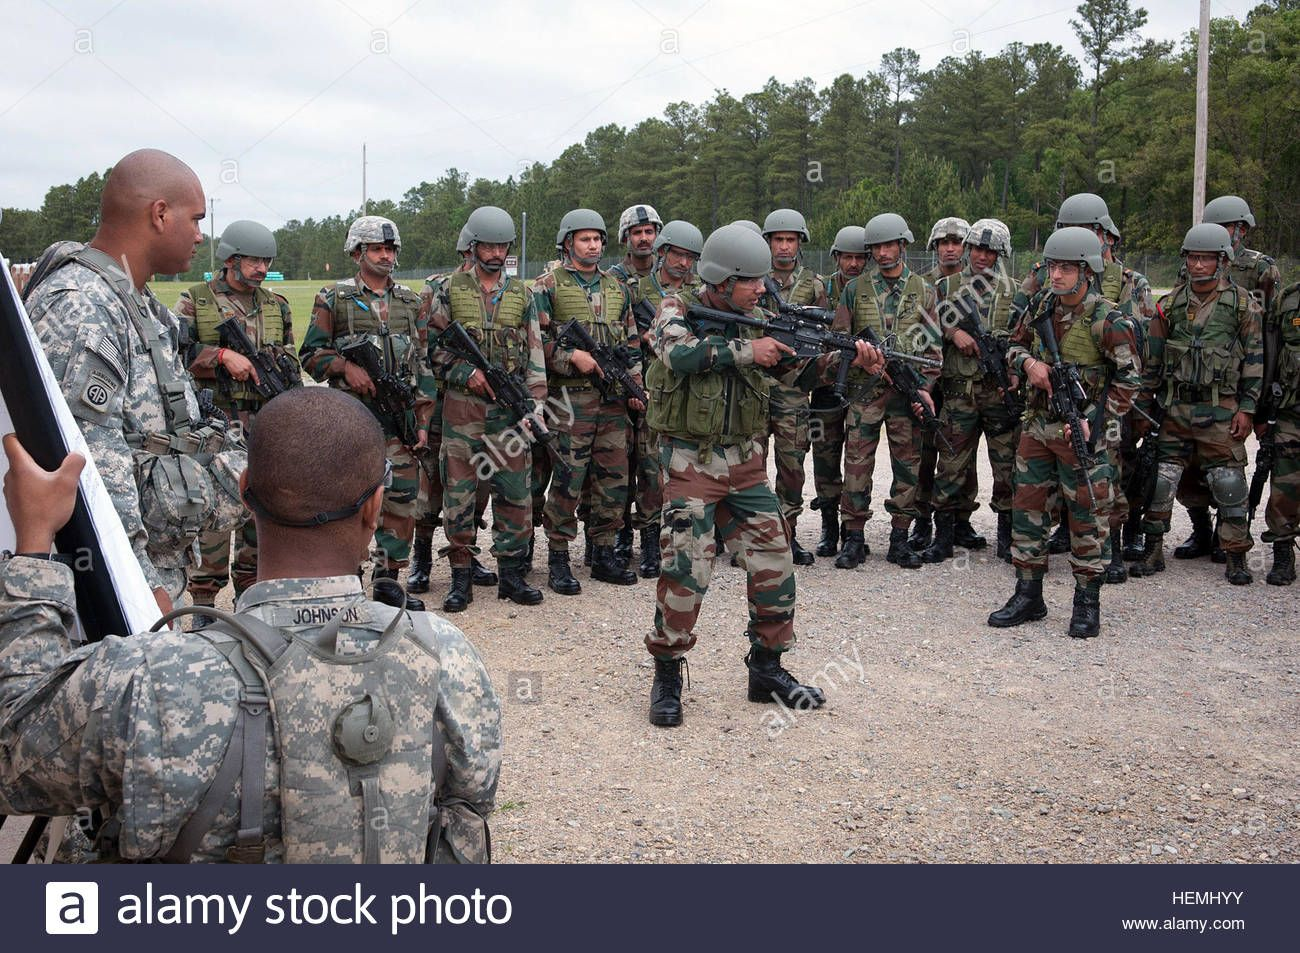 Download this stock image: Indian Army Maj  Arvind Singh, a